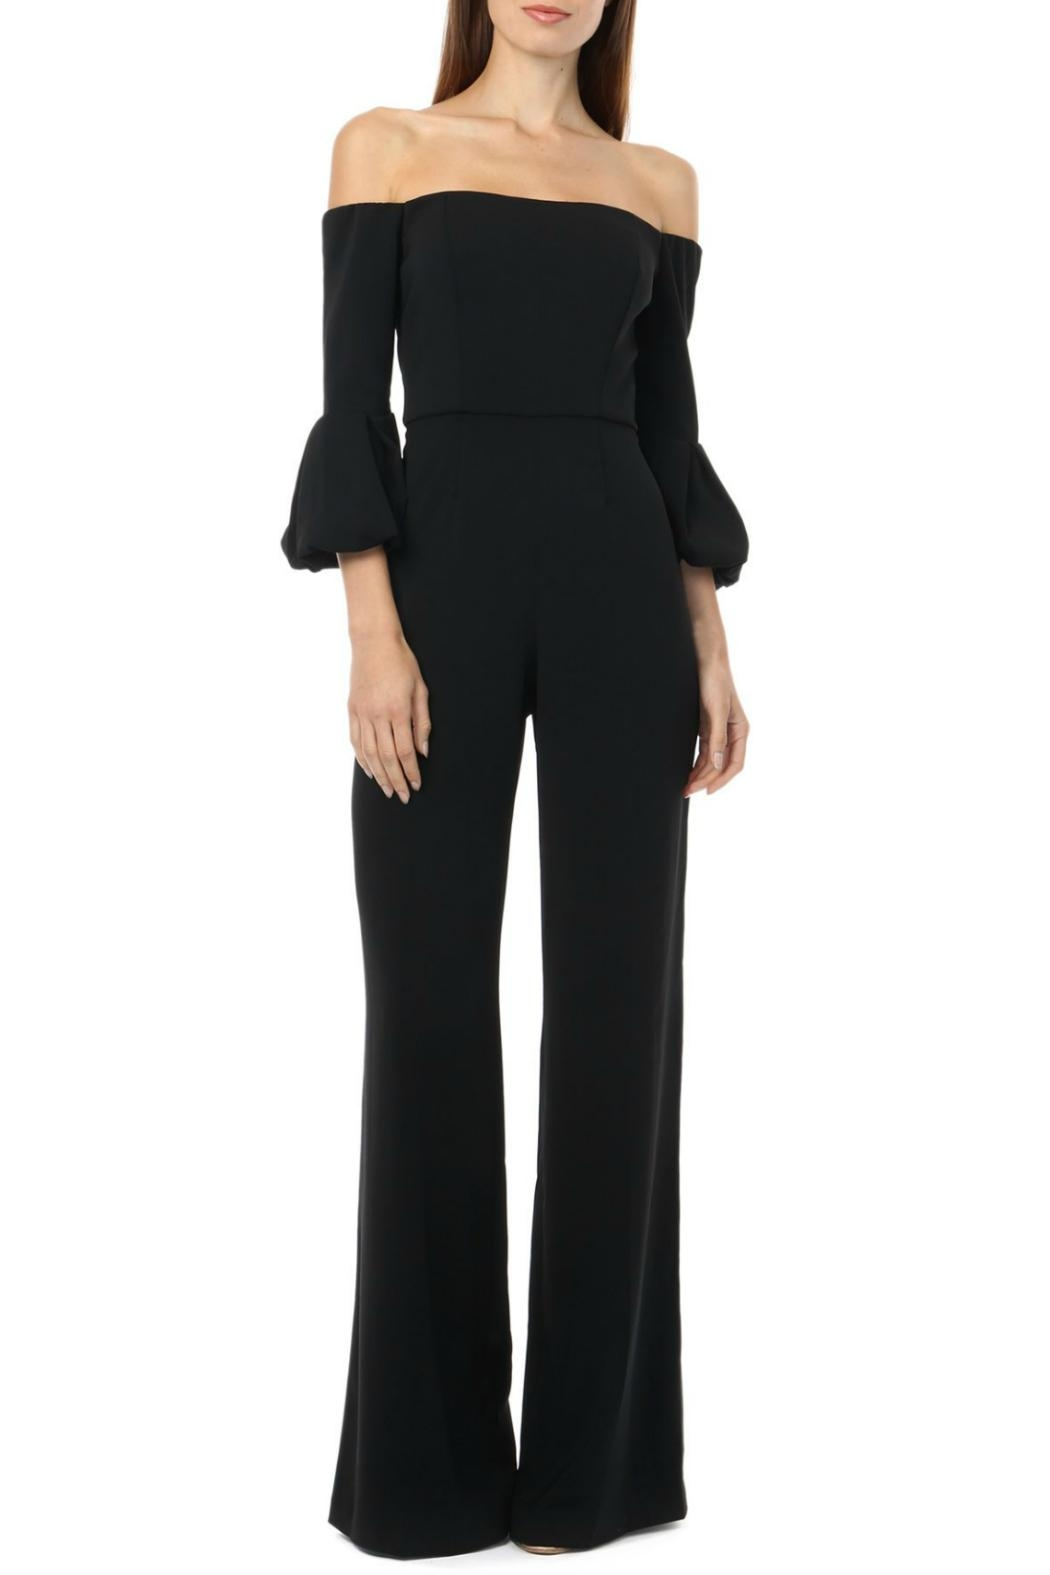 Jay Godfrey Off-The-Shoulder Jumpsuit - Main Image